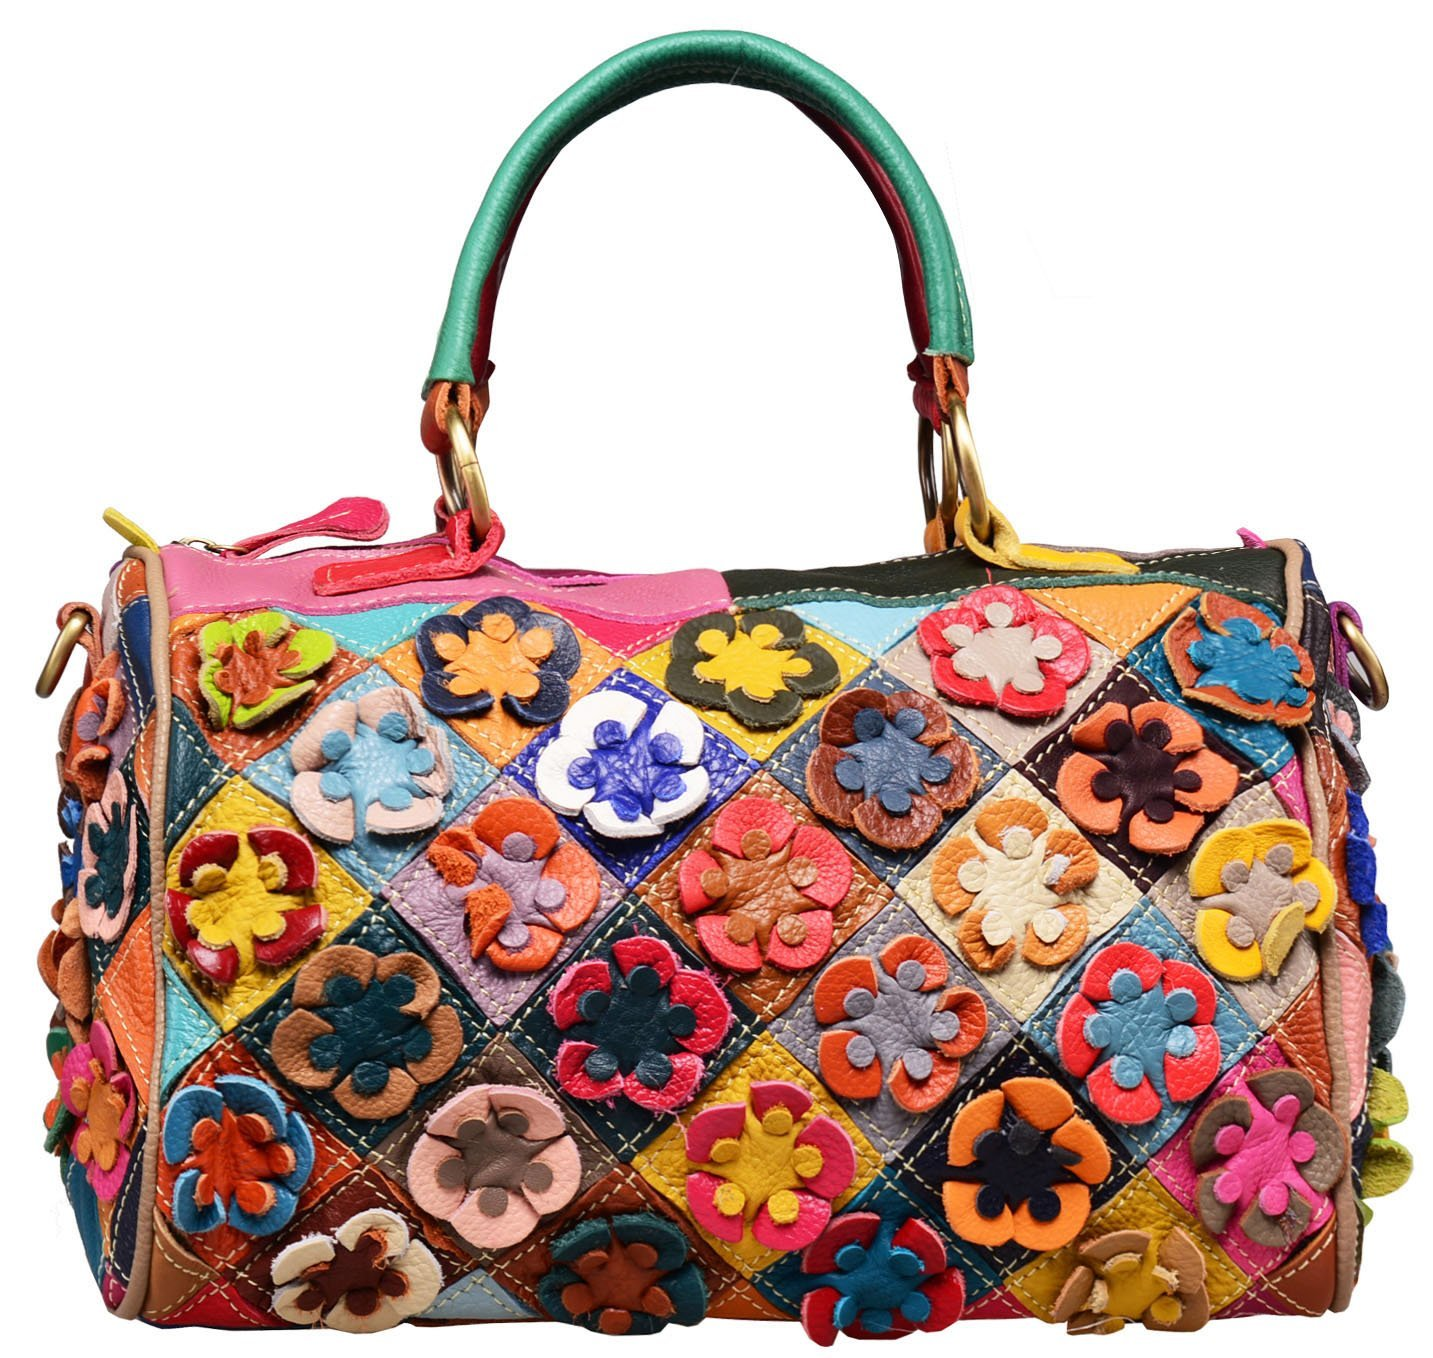 563bc20b1a2 Heshe Hobo Organizer Multi-color Stitching Splicing Shoulder Cross Body Top  Handle Bags Handbags for Women with Flowers Summer Style (Colorful-2B4020)  ...